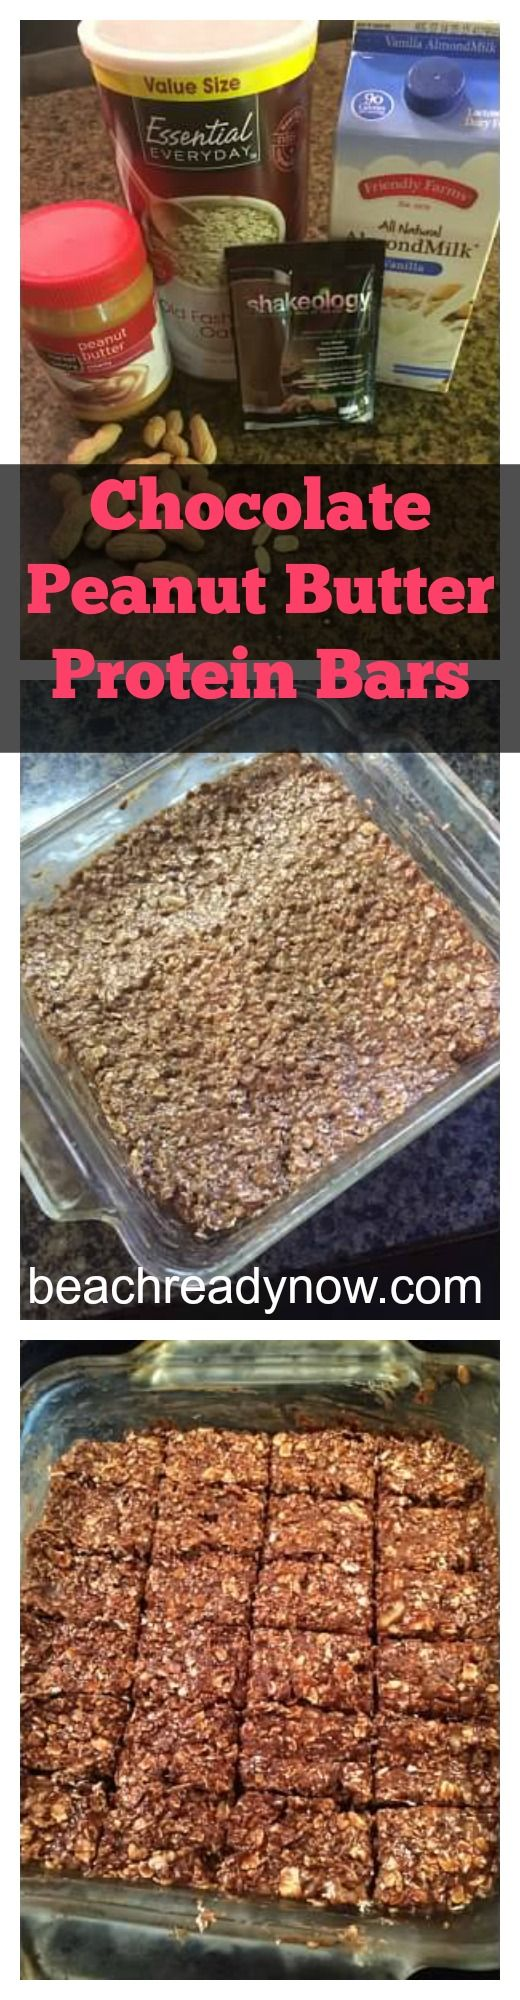 Homemade Chocolate Peanut Butter Protein Bars #21DayFIx friendly